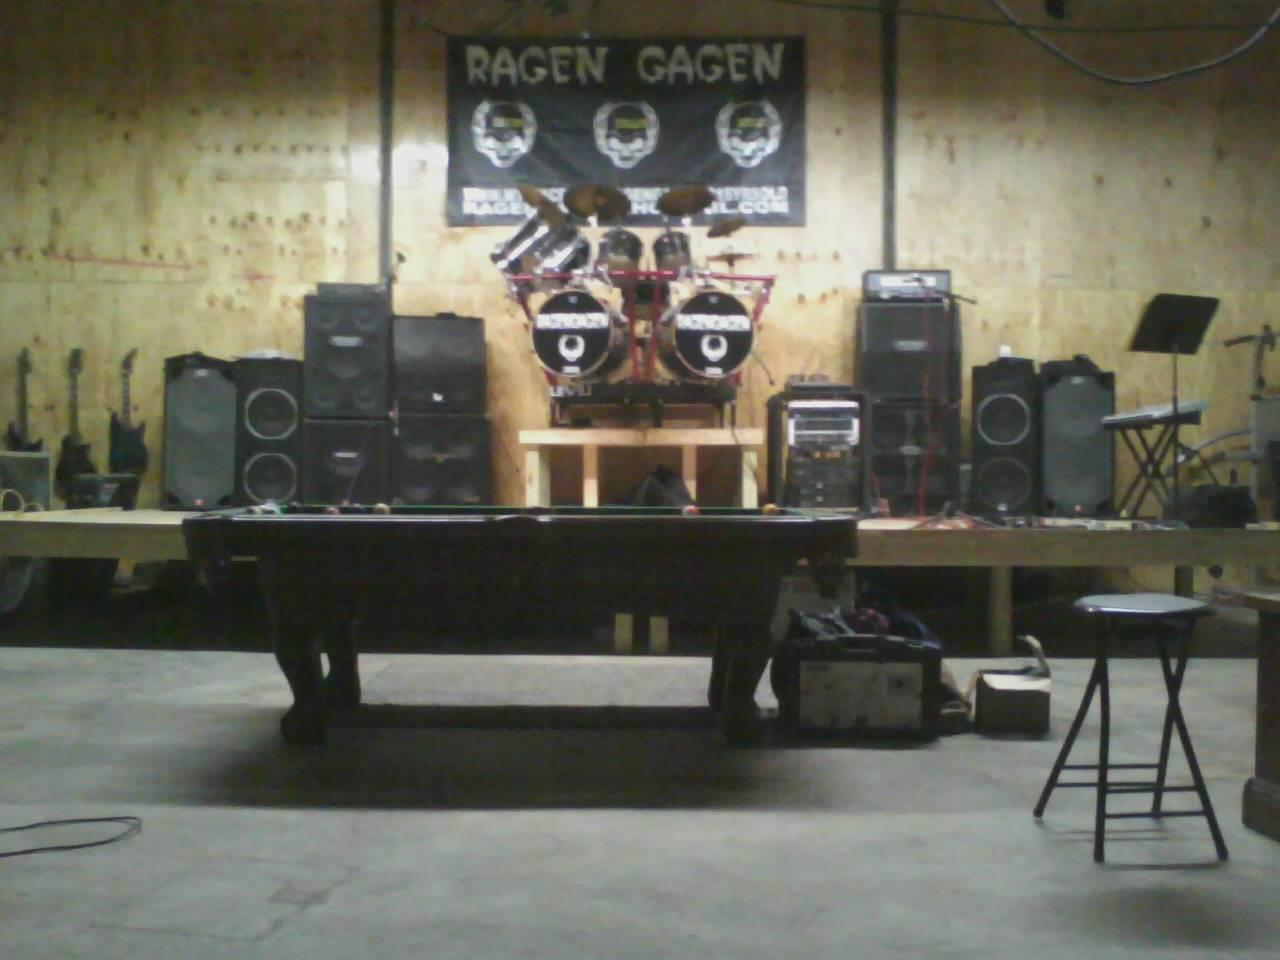 home of ragen gagen , our venue / studio